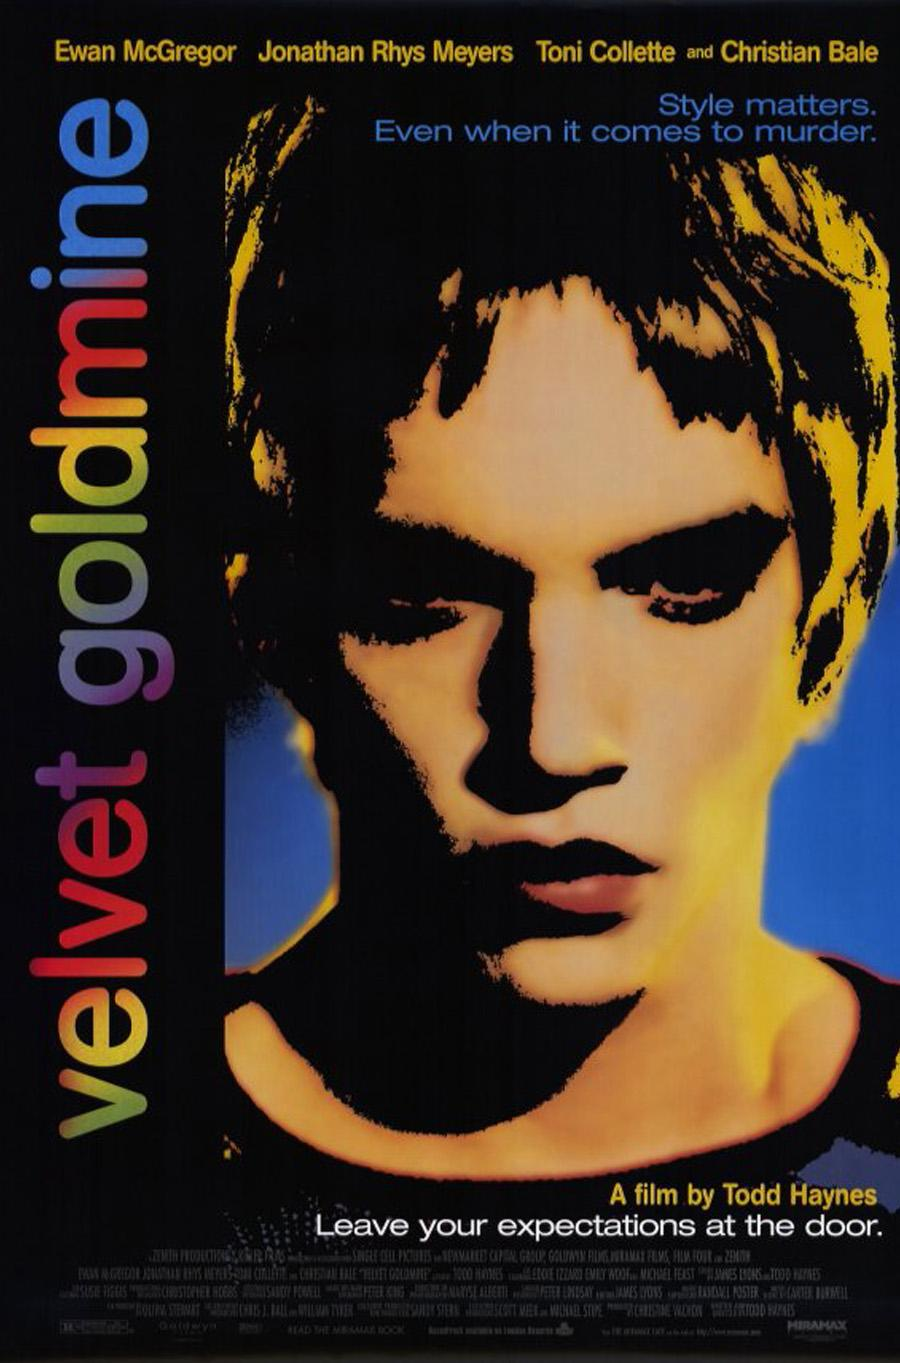 """A graphic poster for a movie starring Ewan McGregor, the portrait of a man in highly saturated colors and jet black shadows with """"velvet goldmine"""" in rainbow colors"""